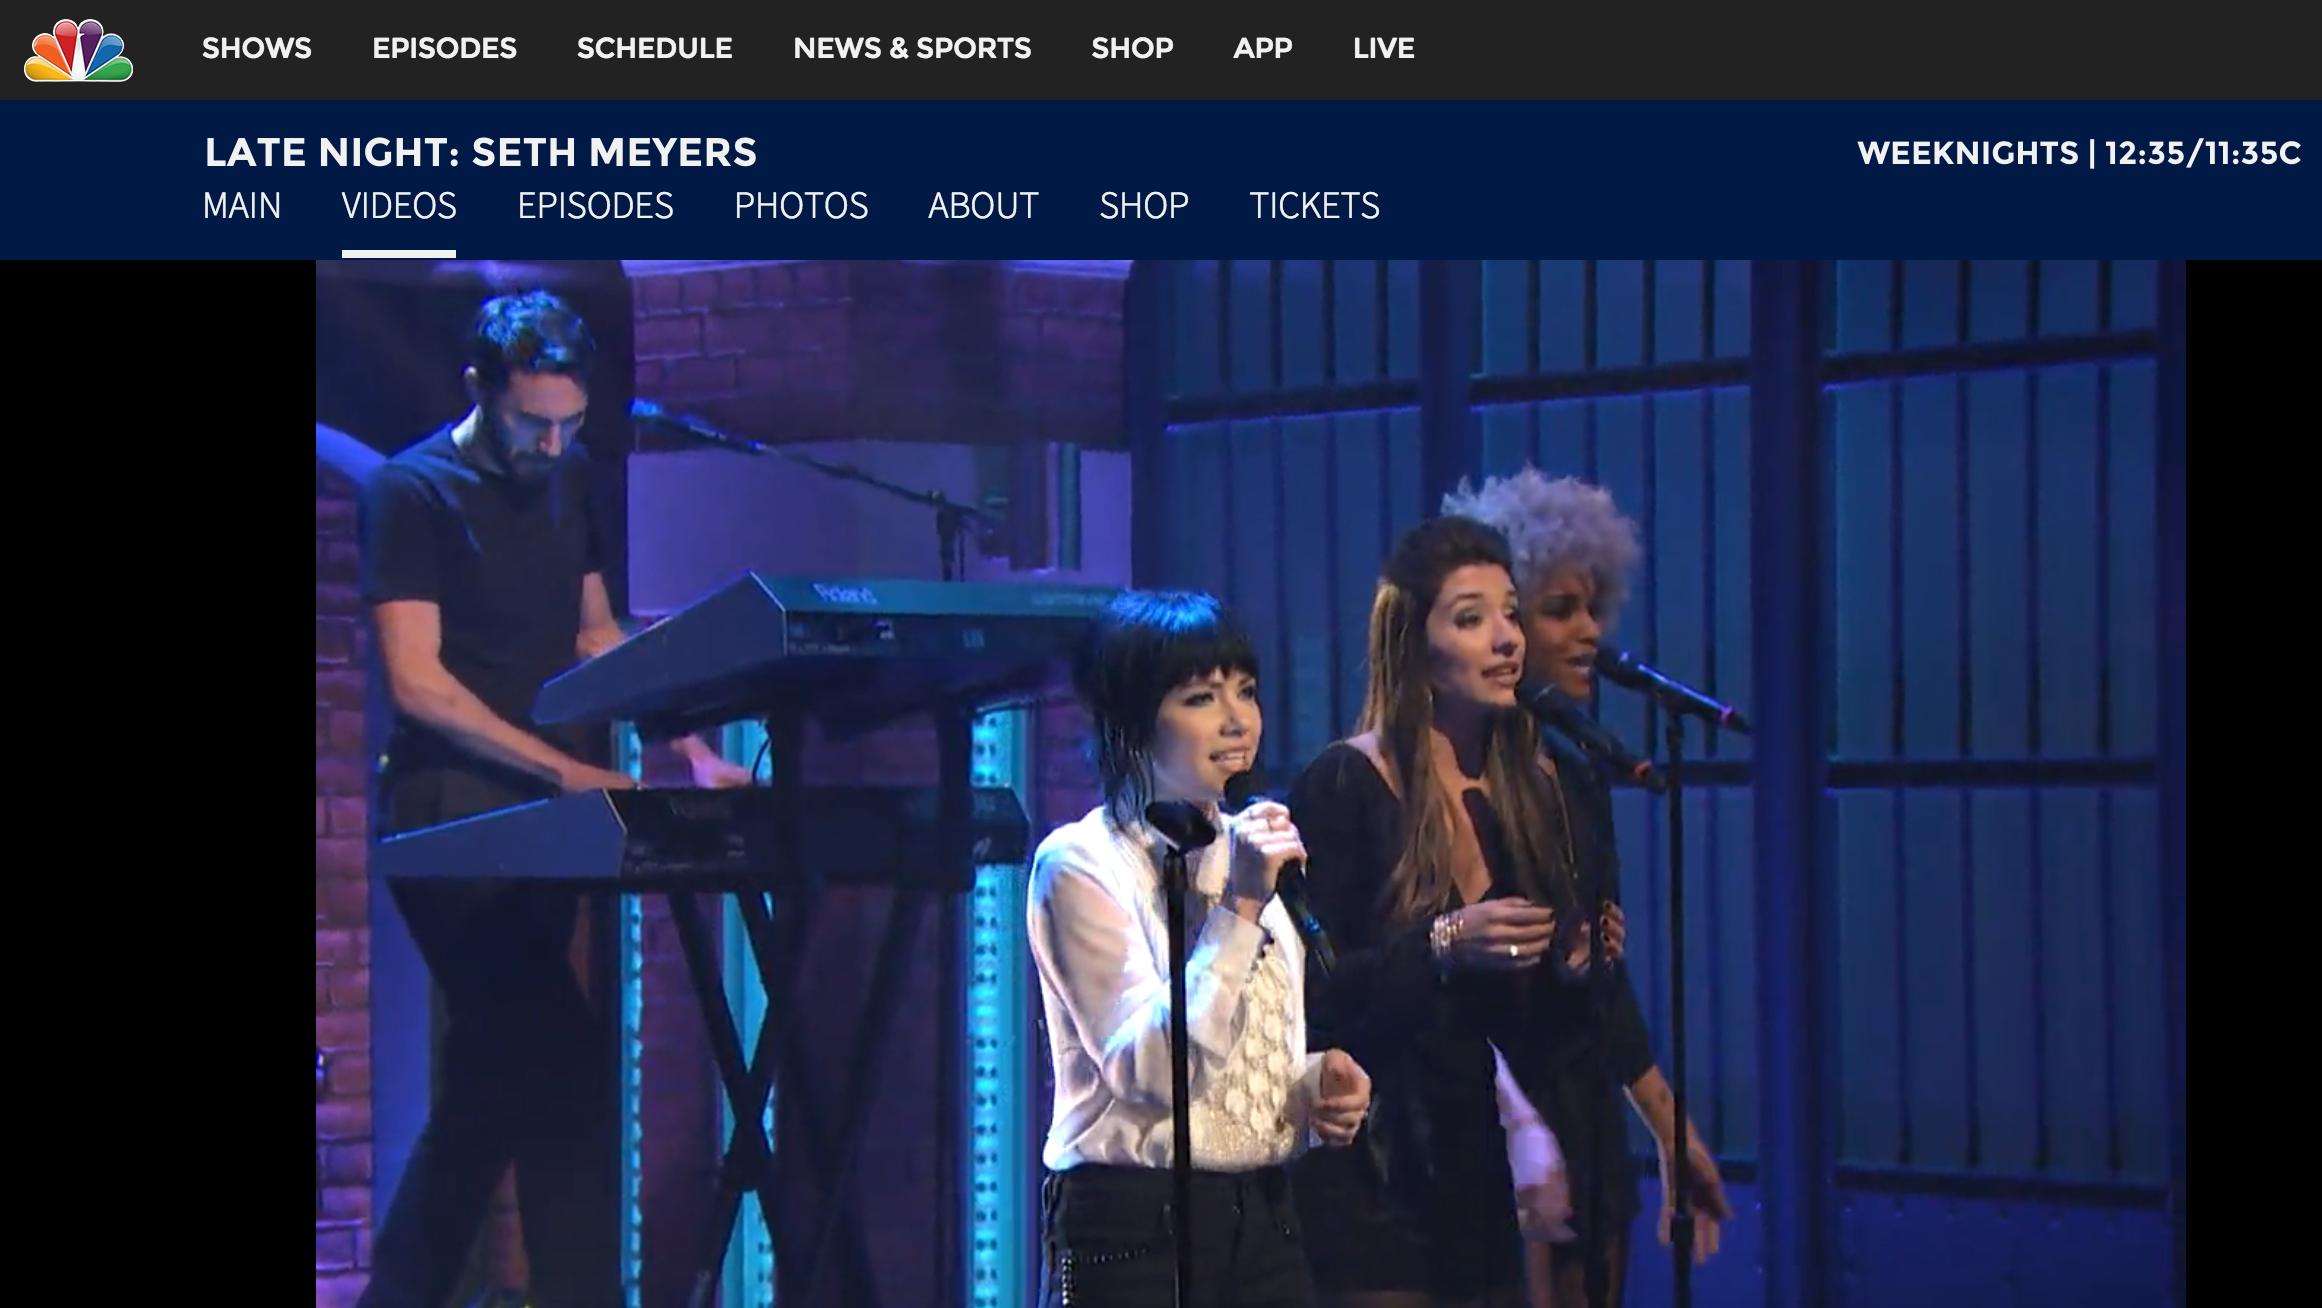 CARLY RAE JEPSEN live on Seth Meyers